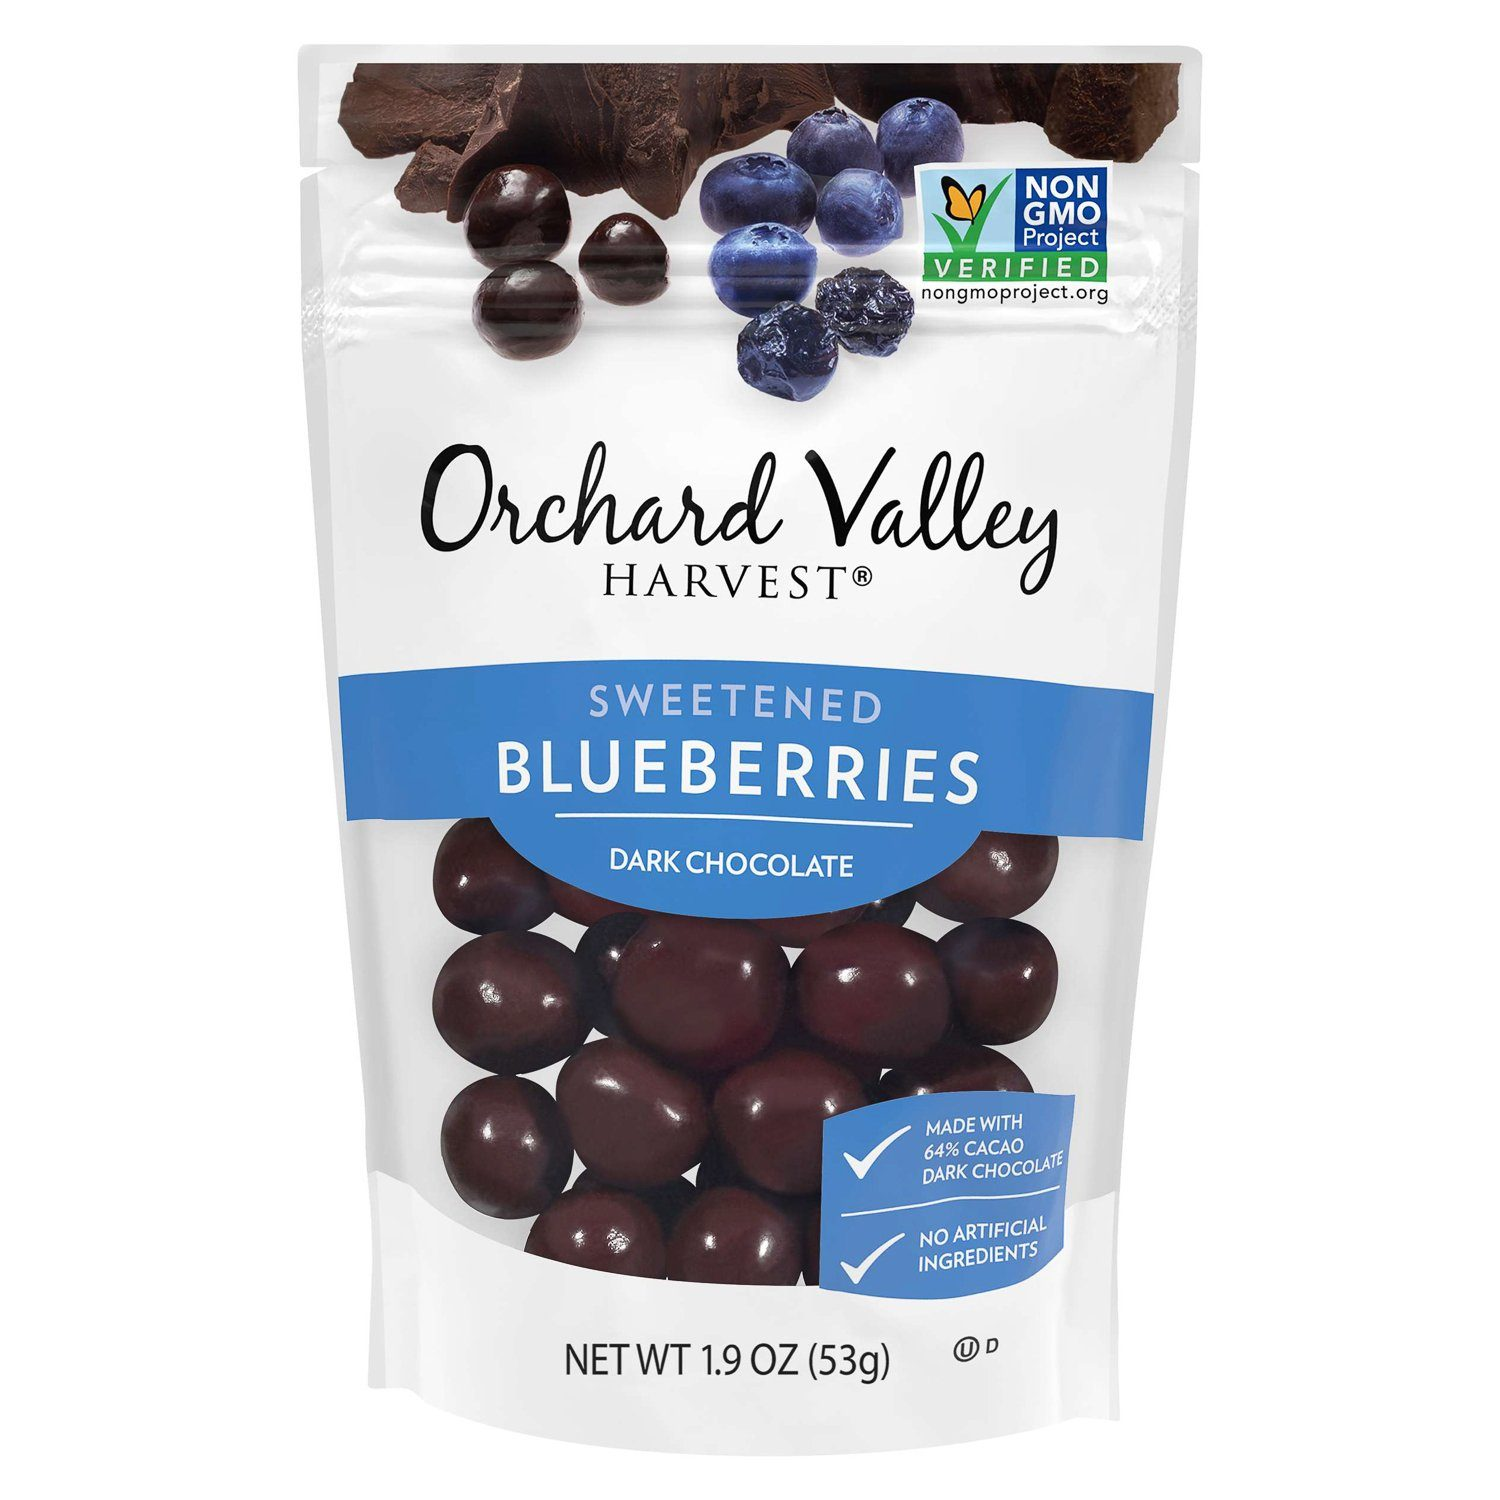 Orchard Valley Harvest Chocolate Covered Meltable Orchard Valley Harvest Dark Chocolate Blueberries 1.9 Ounce